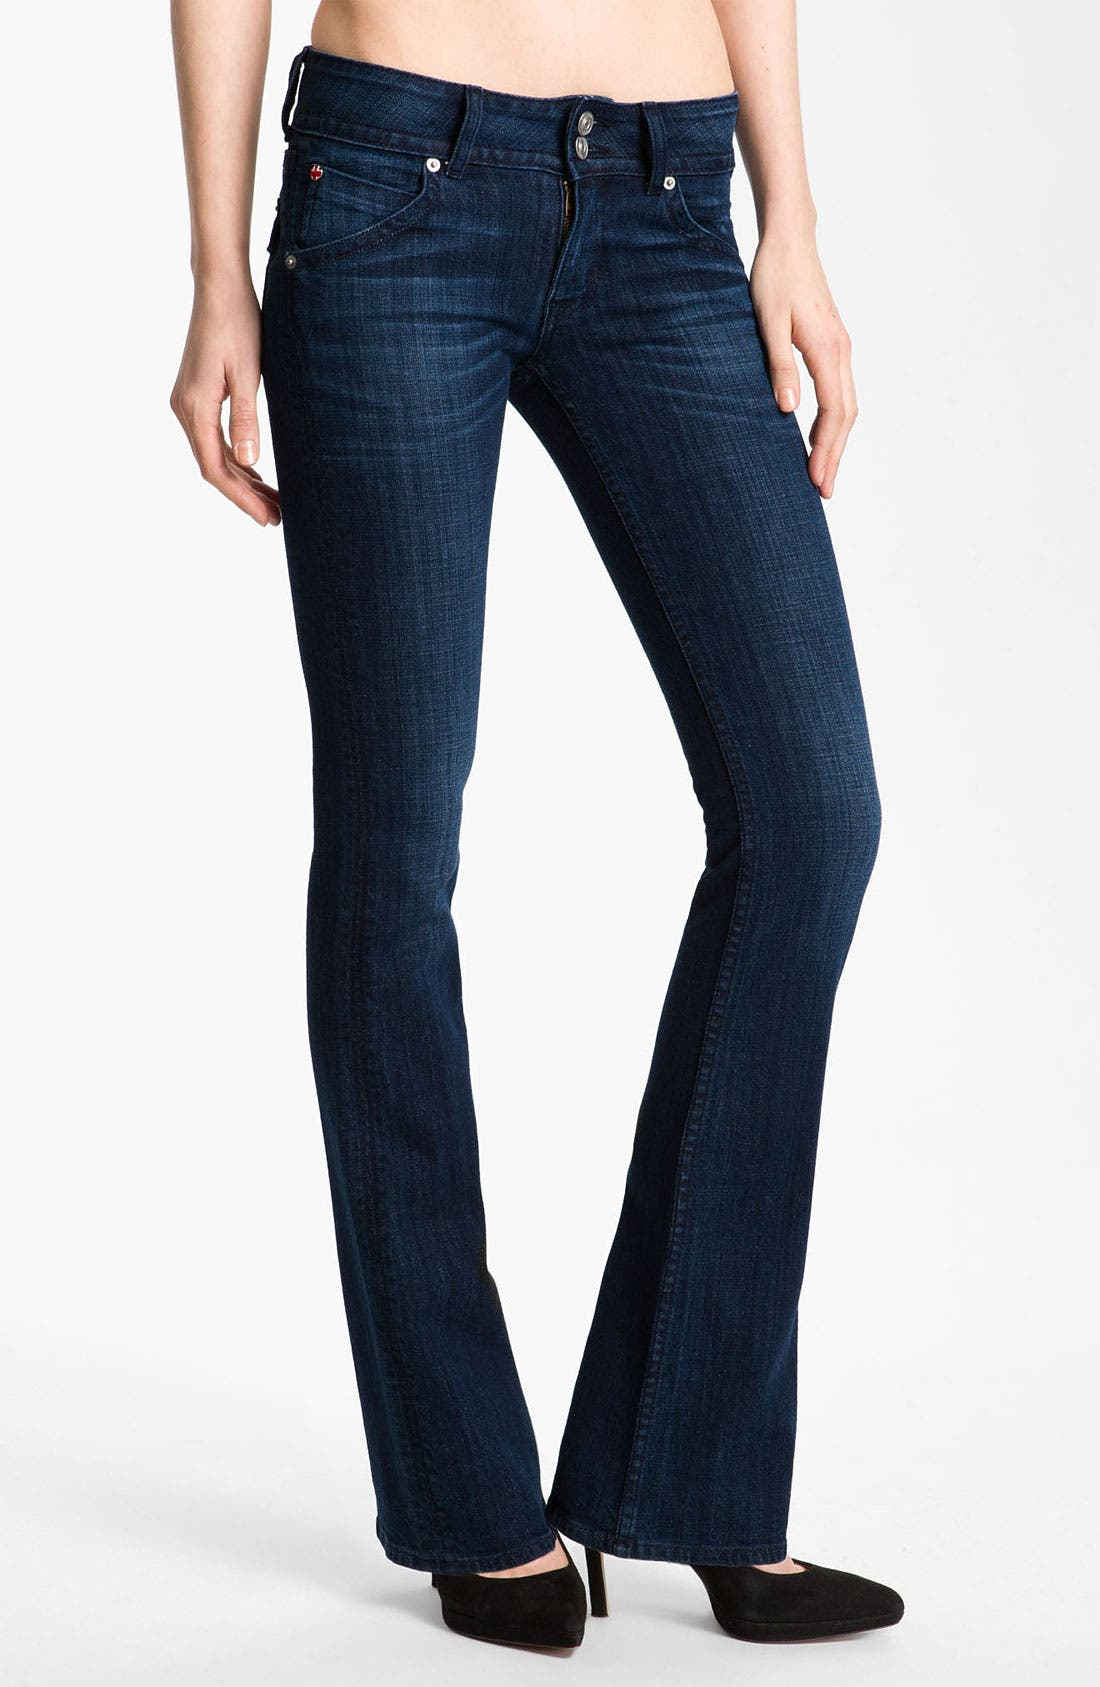 Alternate Image 1 Selected - Hudson Jeans Bootcut Stretch Jeans (South Hall)